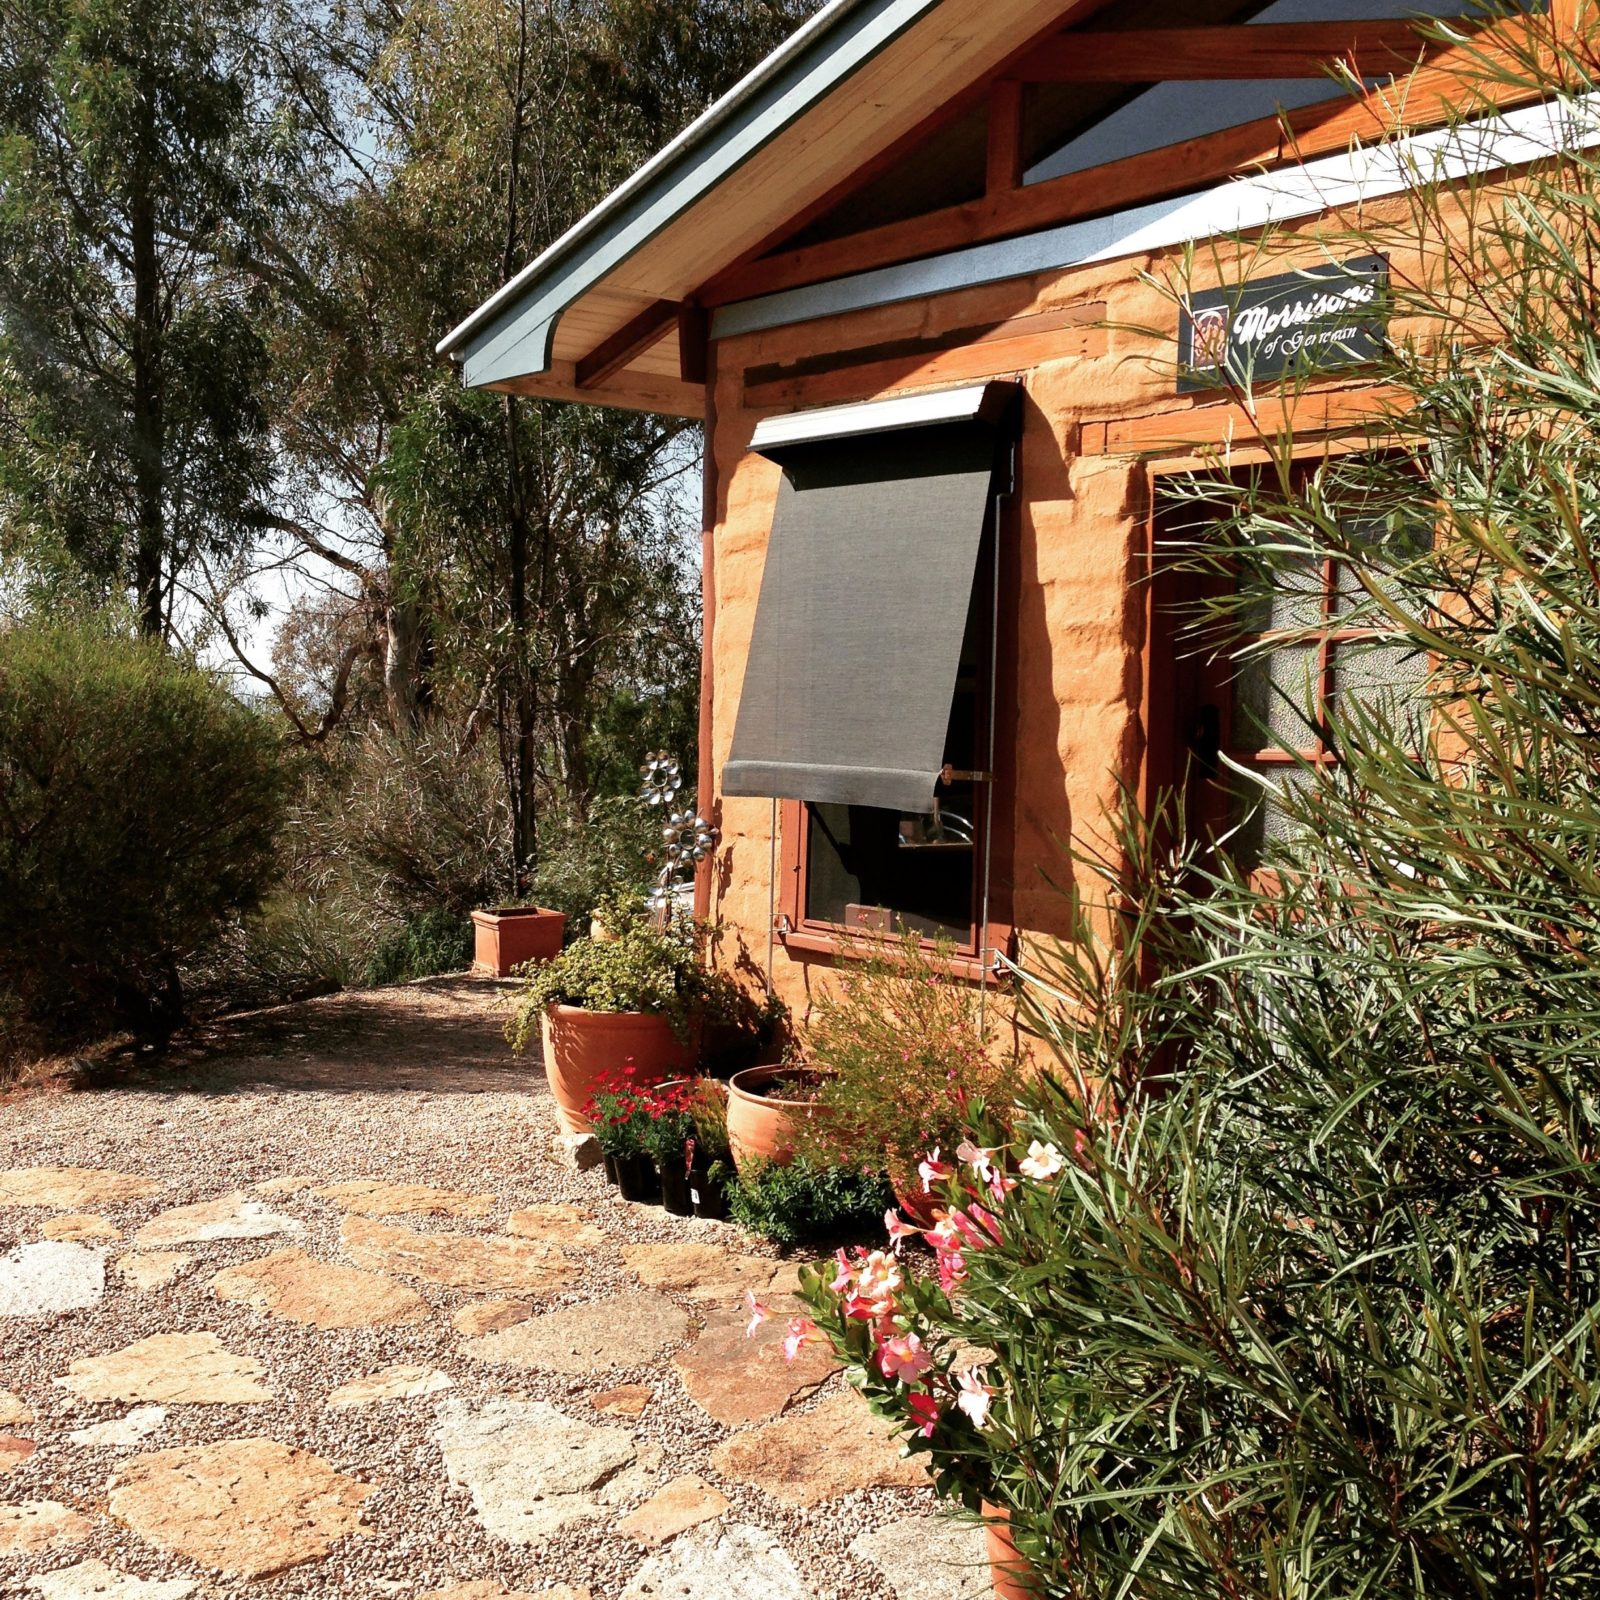 Morrisons has an accessible mud brick cellar door where you taste wines and where produce is sold